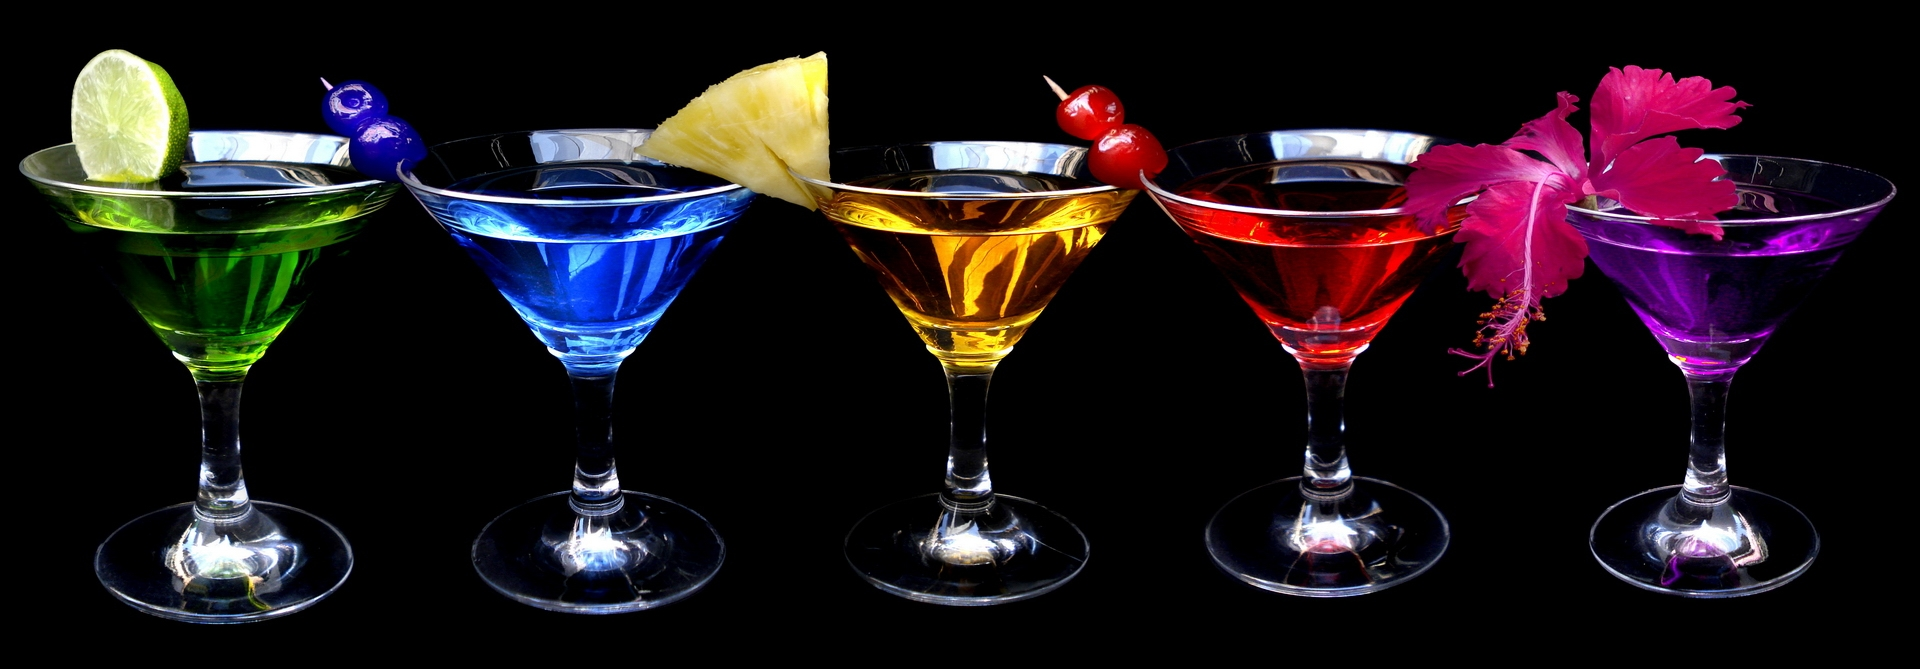 cocktails five colors.jpg